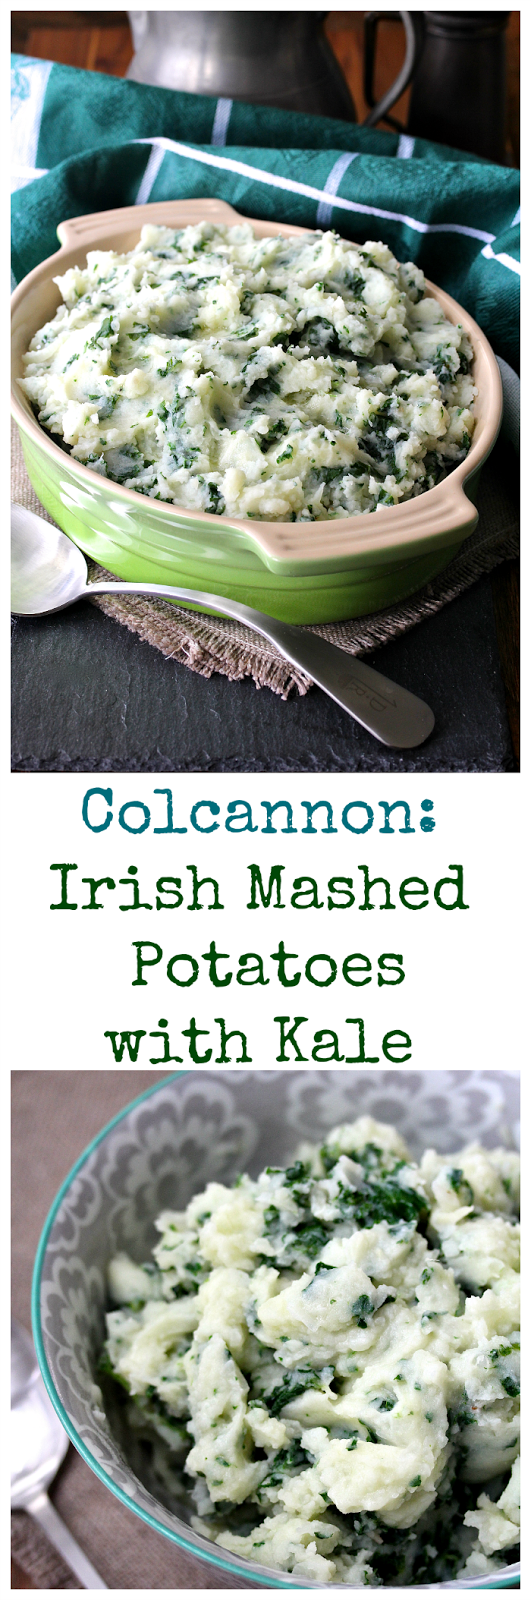 Colcannon is a traditional Irish potato dish, typically made with kale, cabbage, leeks, or assorted chopped greens, along with butter and milk.